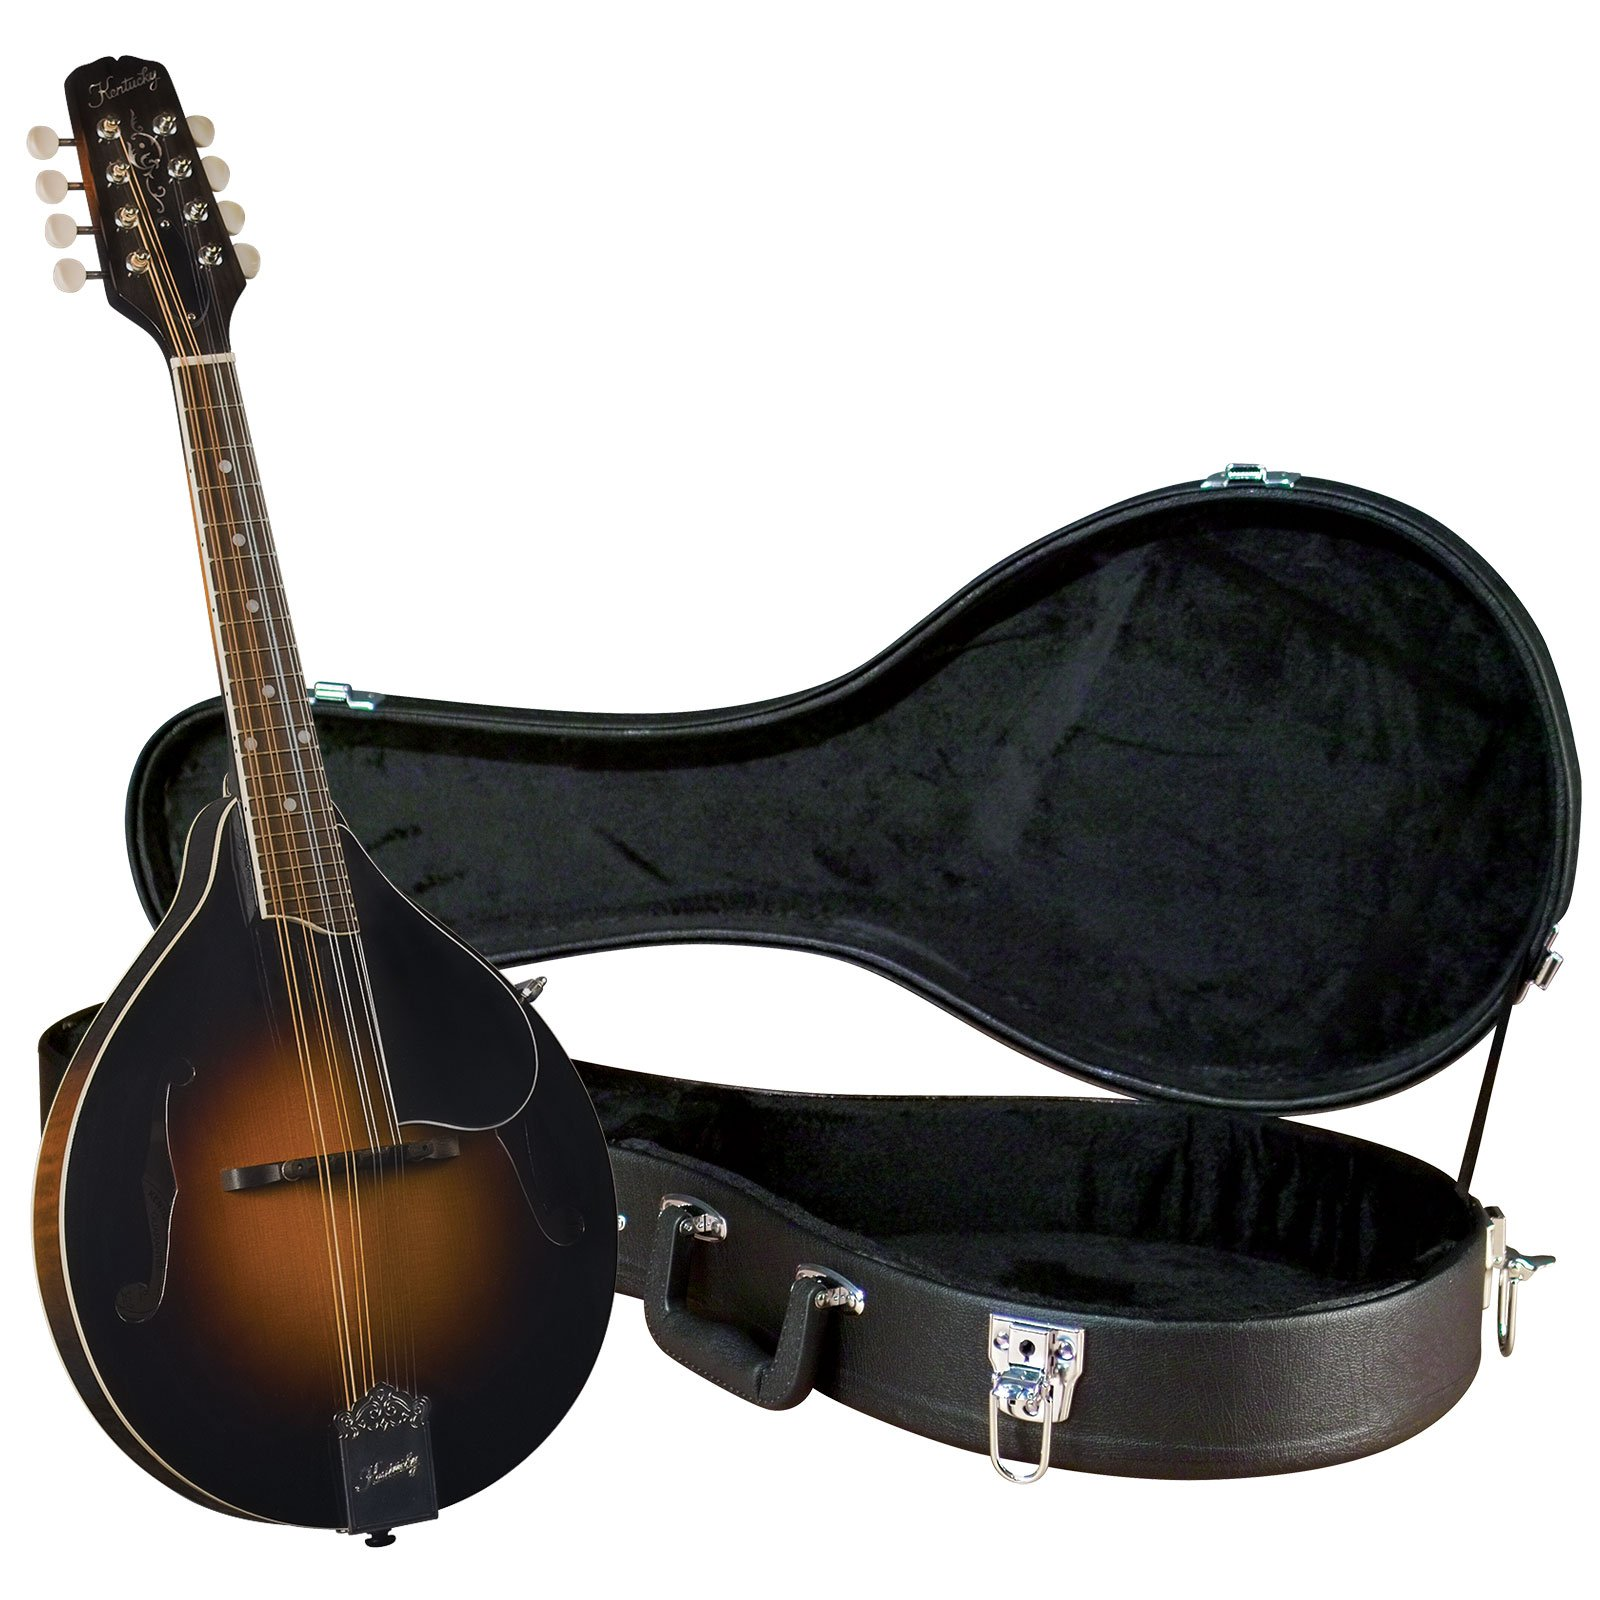 Kentucky KM-250 Artist A-model Mandolin with Deluxe Case - Sunburst